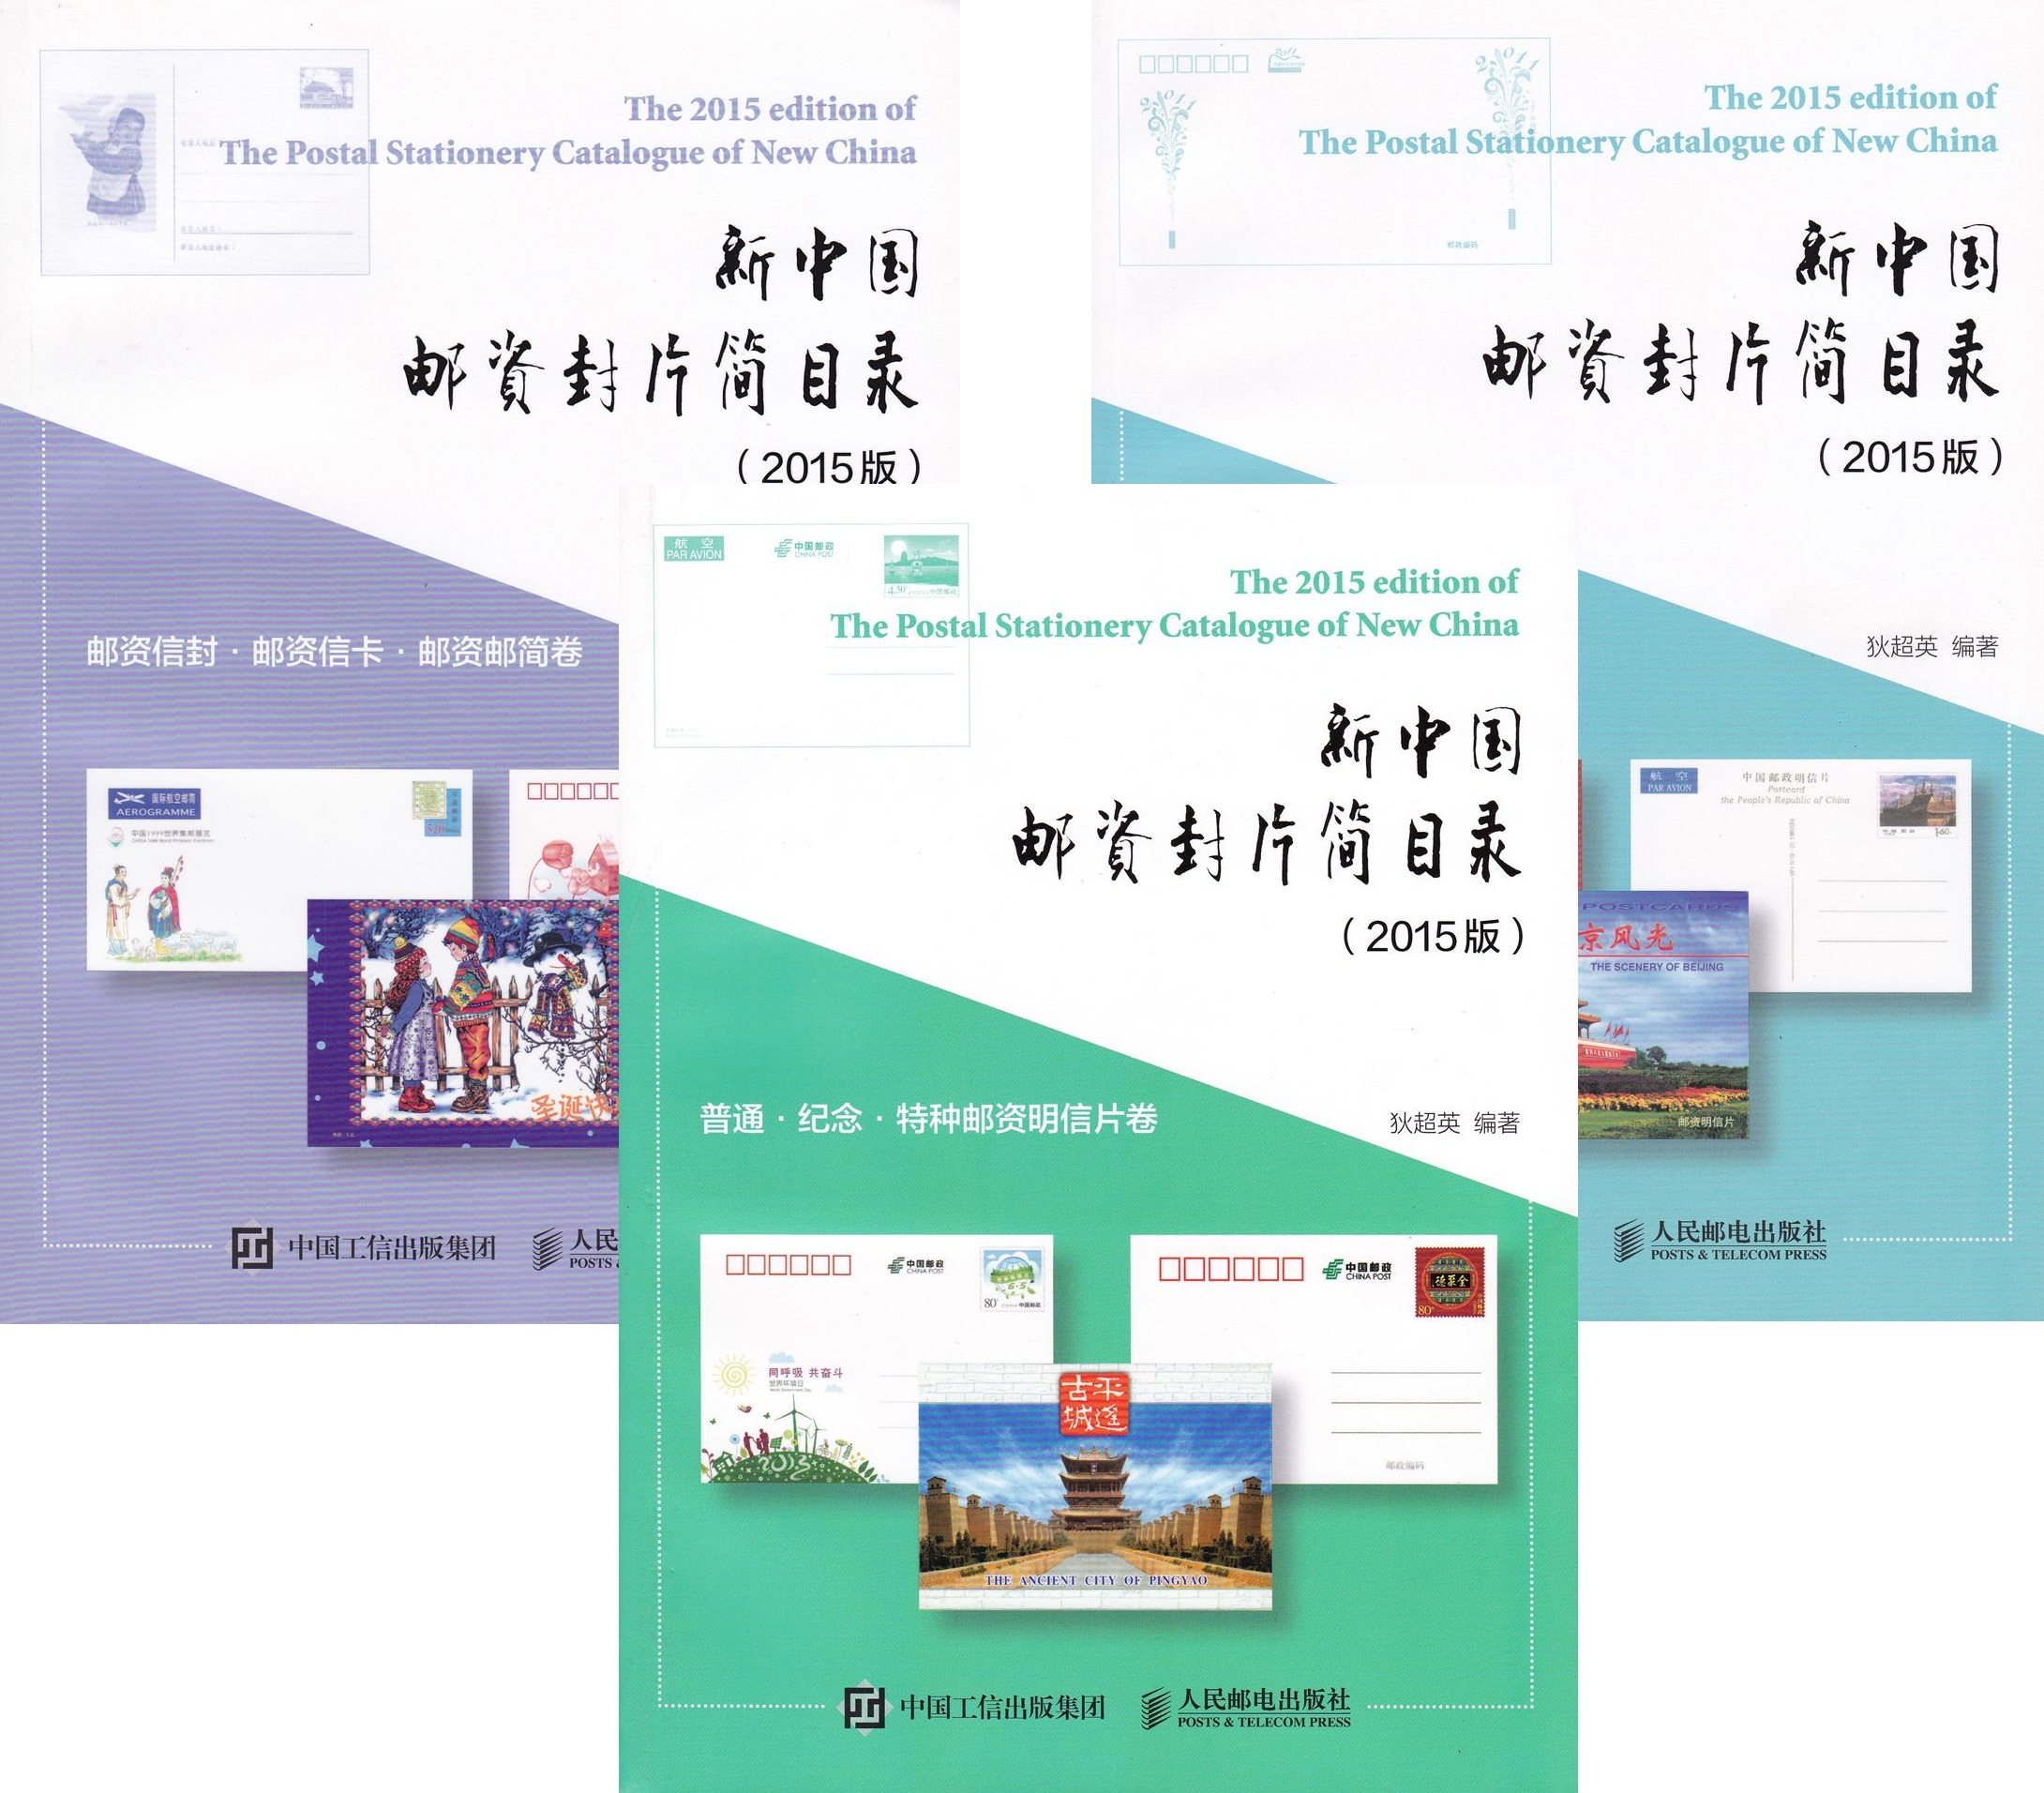 F2266, Postal Stationery Catalog of New China, 2015 Edition, 3 Volumes